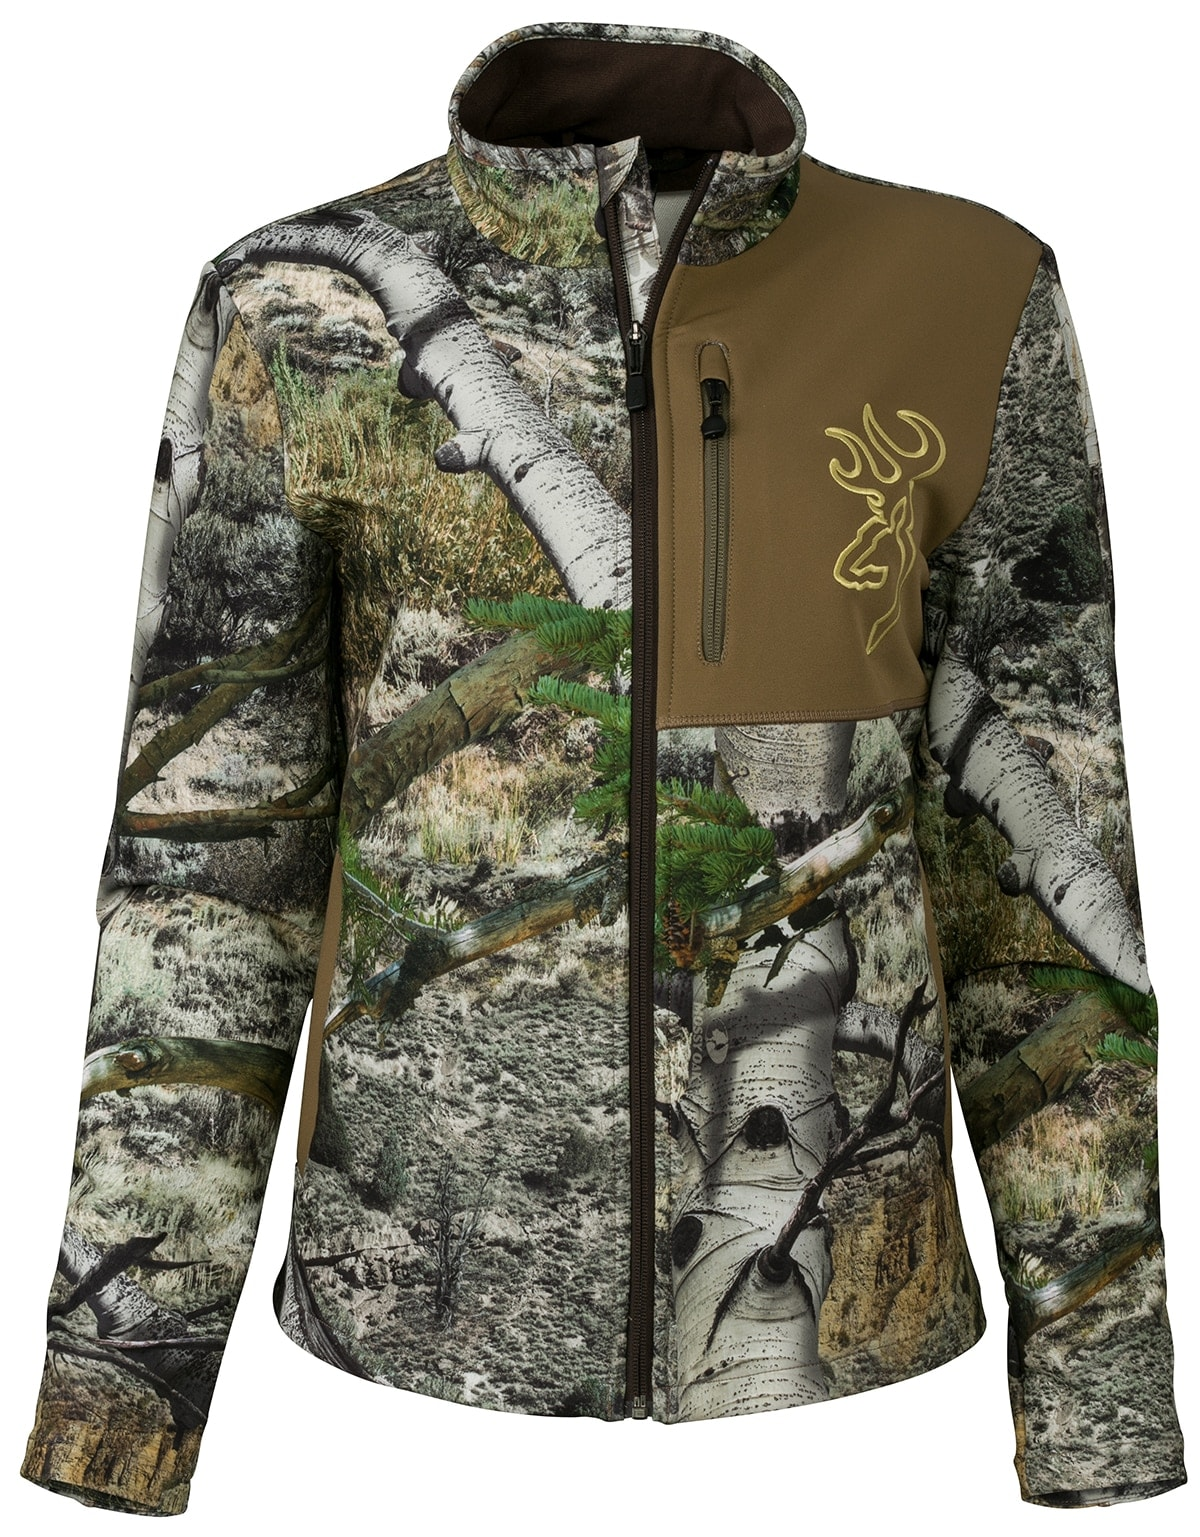 The Hell's Canyon Mercury Jacket is one of several new offerings for women. (Photo: Browning)